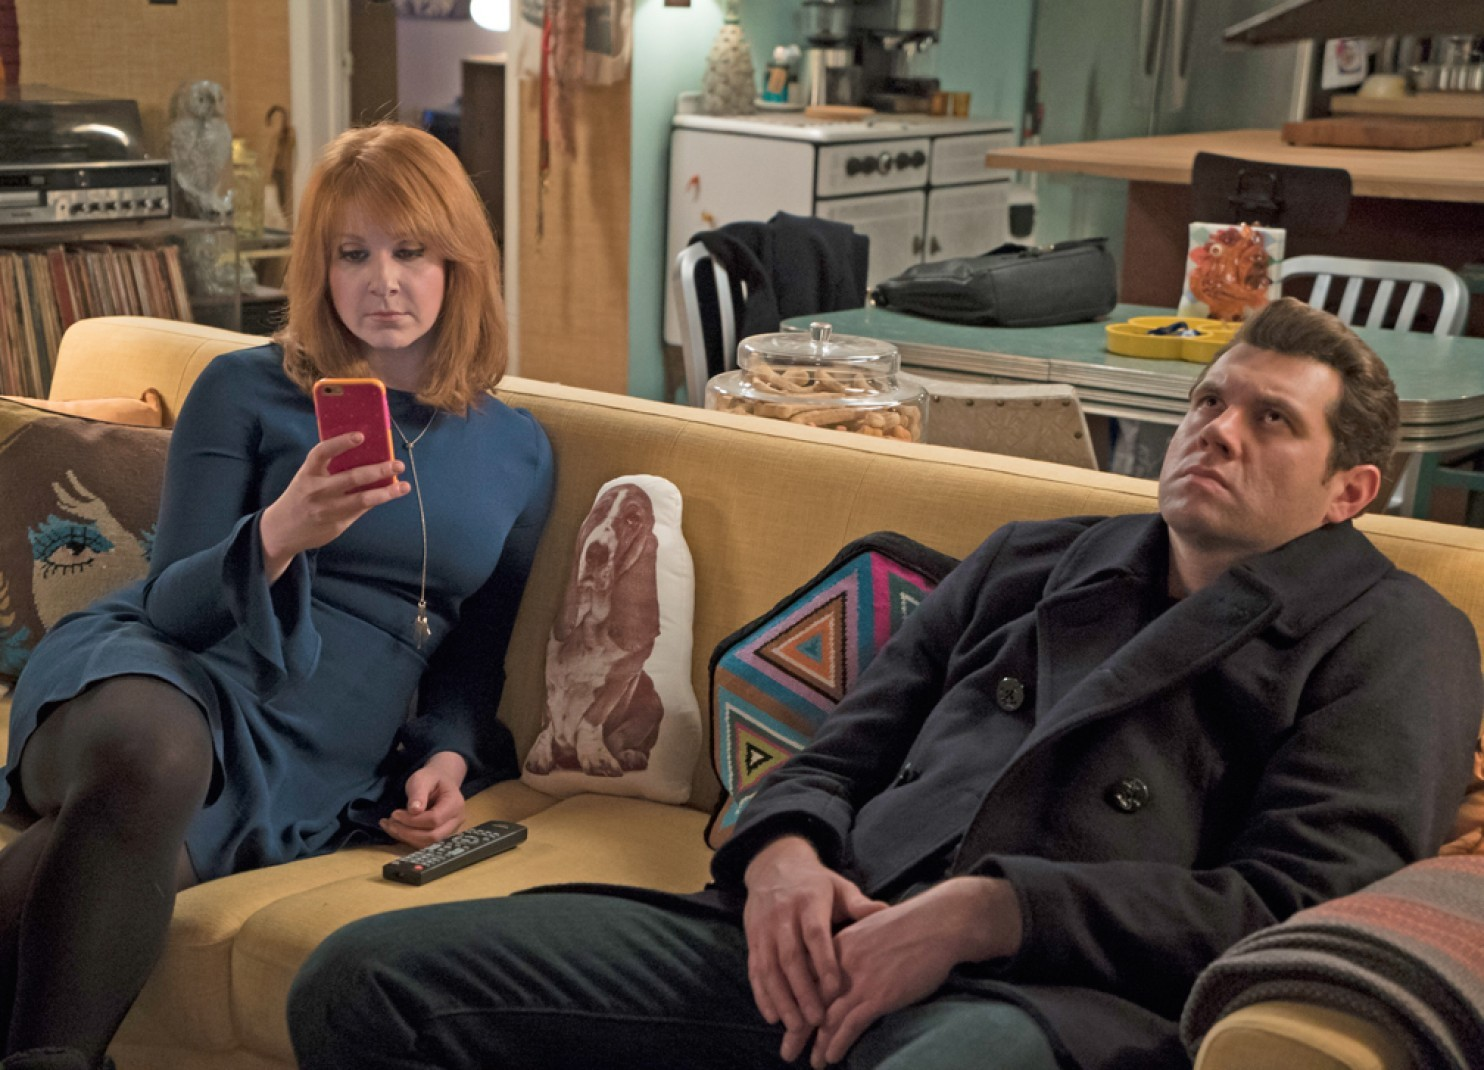 Difficult People: i protagonisti Julie Klausner e Billy Eichner in un'immagine tratta dalla prima stagione